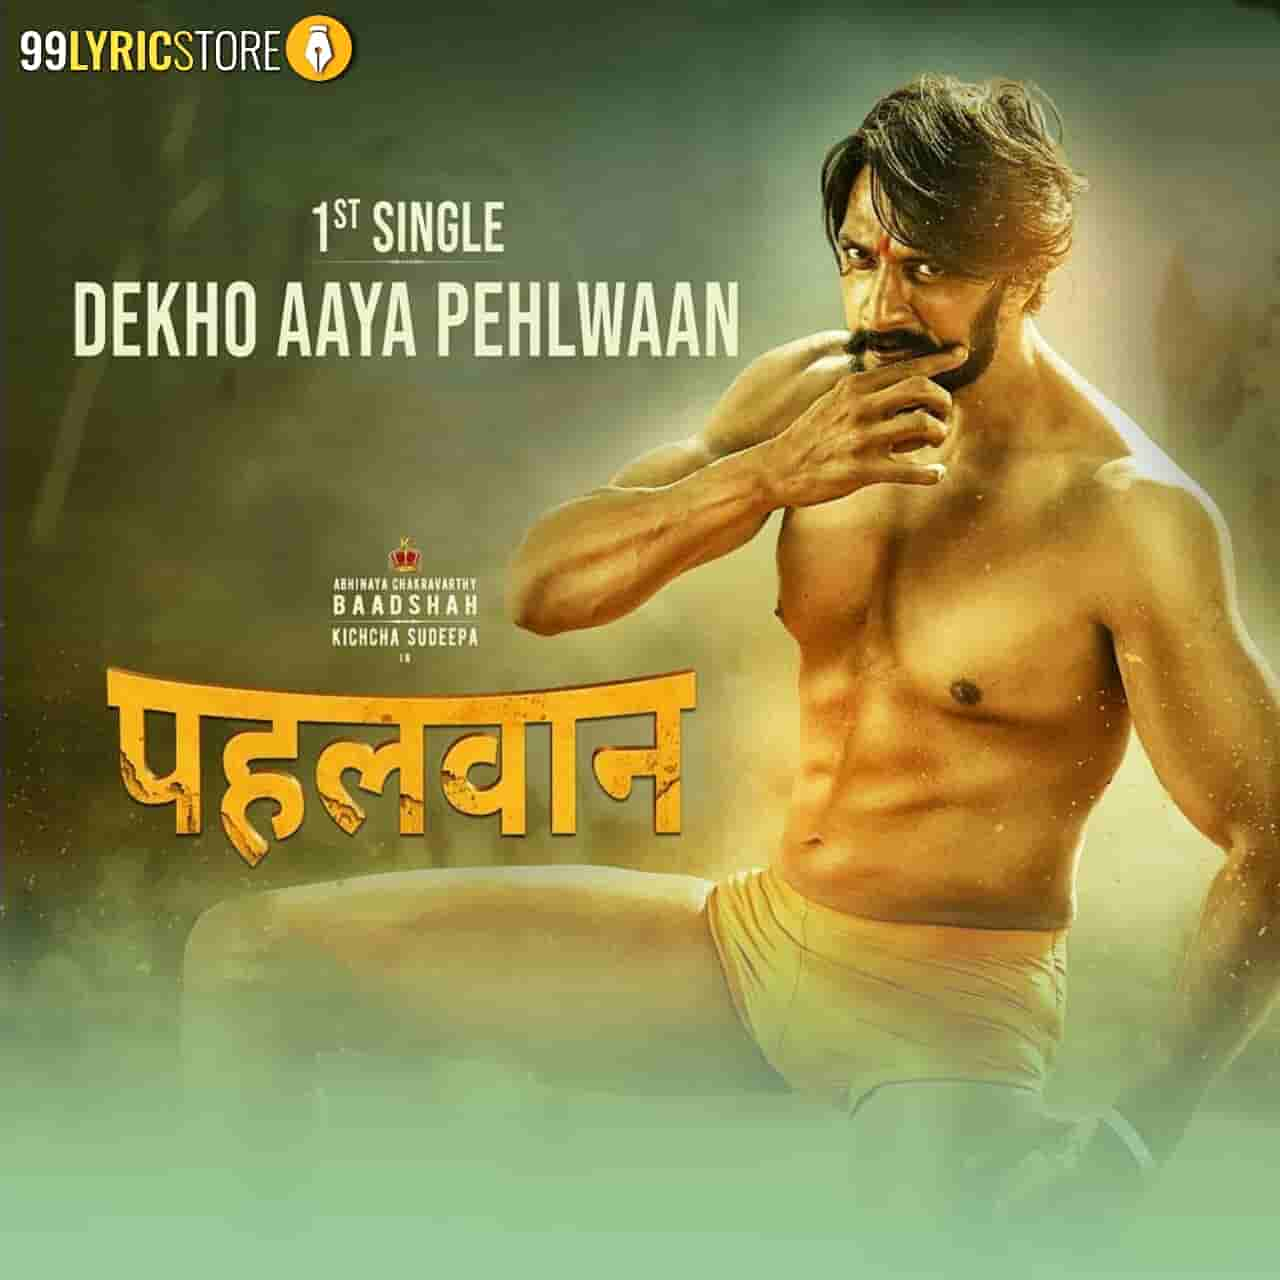 Dekho Aaya Pehlwaan Lyrics sung by dev Negi from movie Pehlwaan